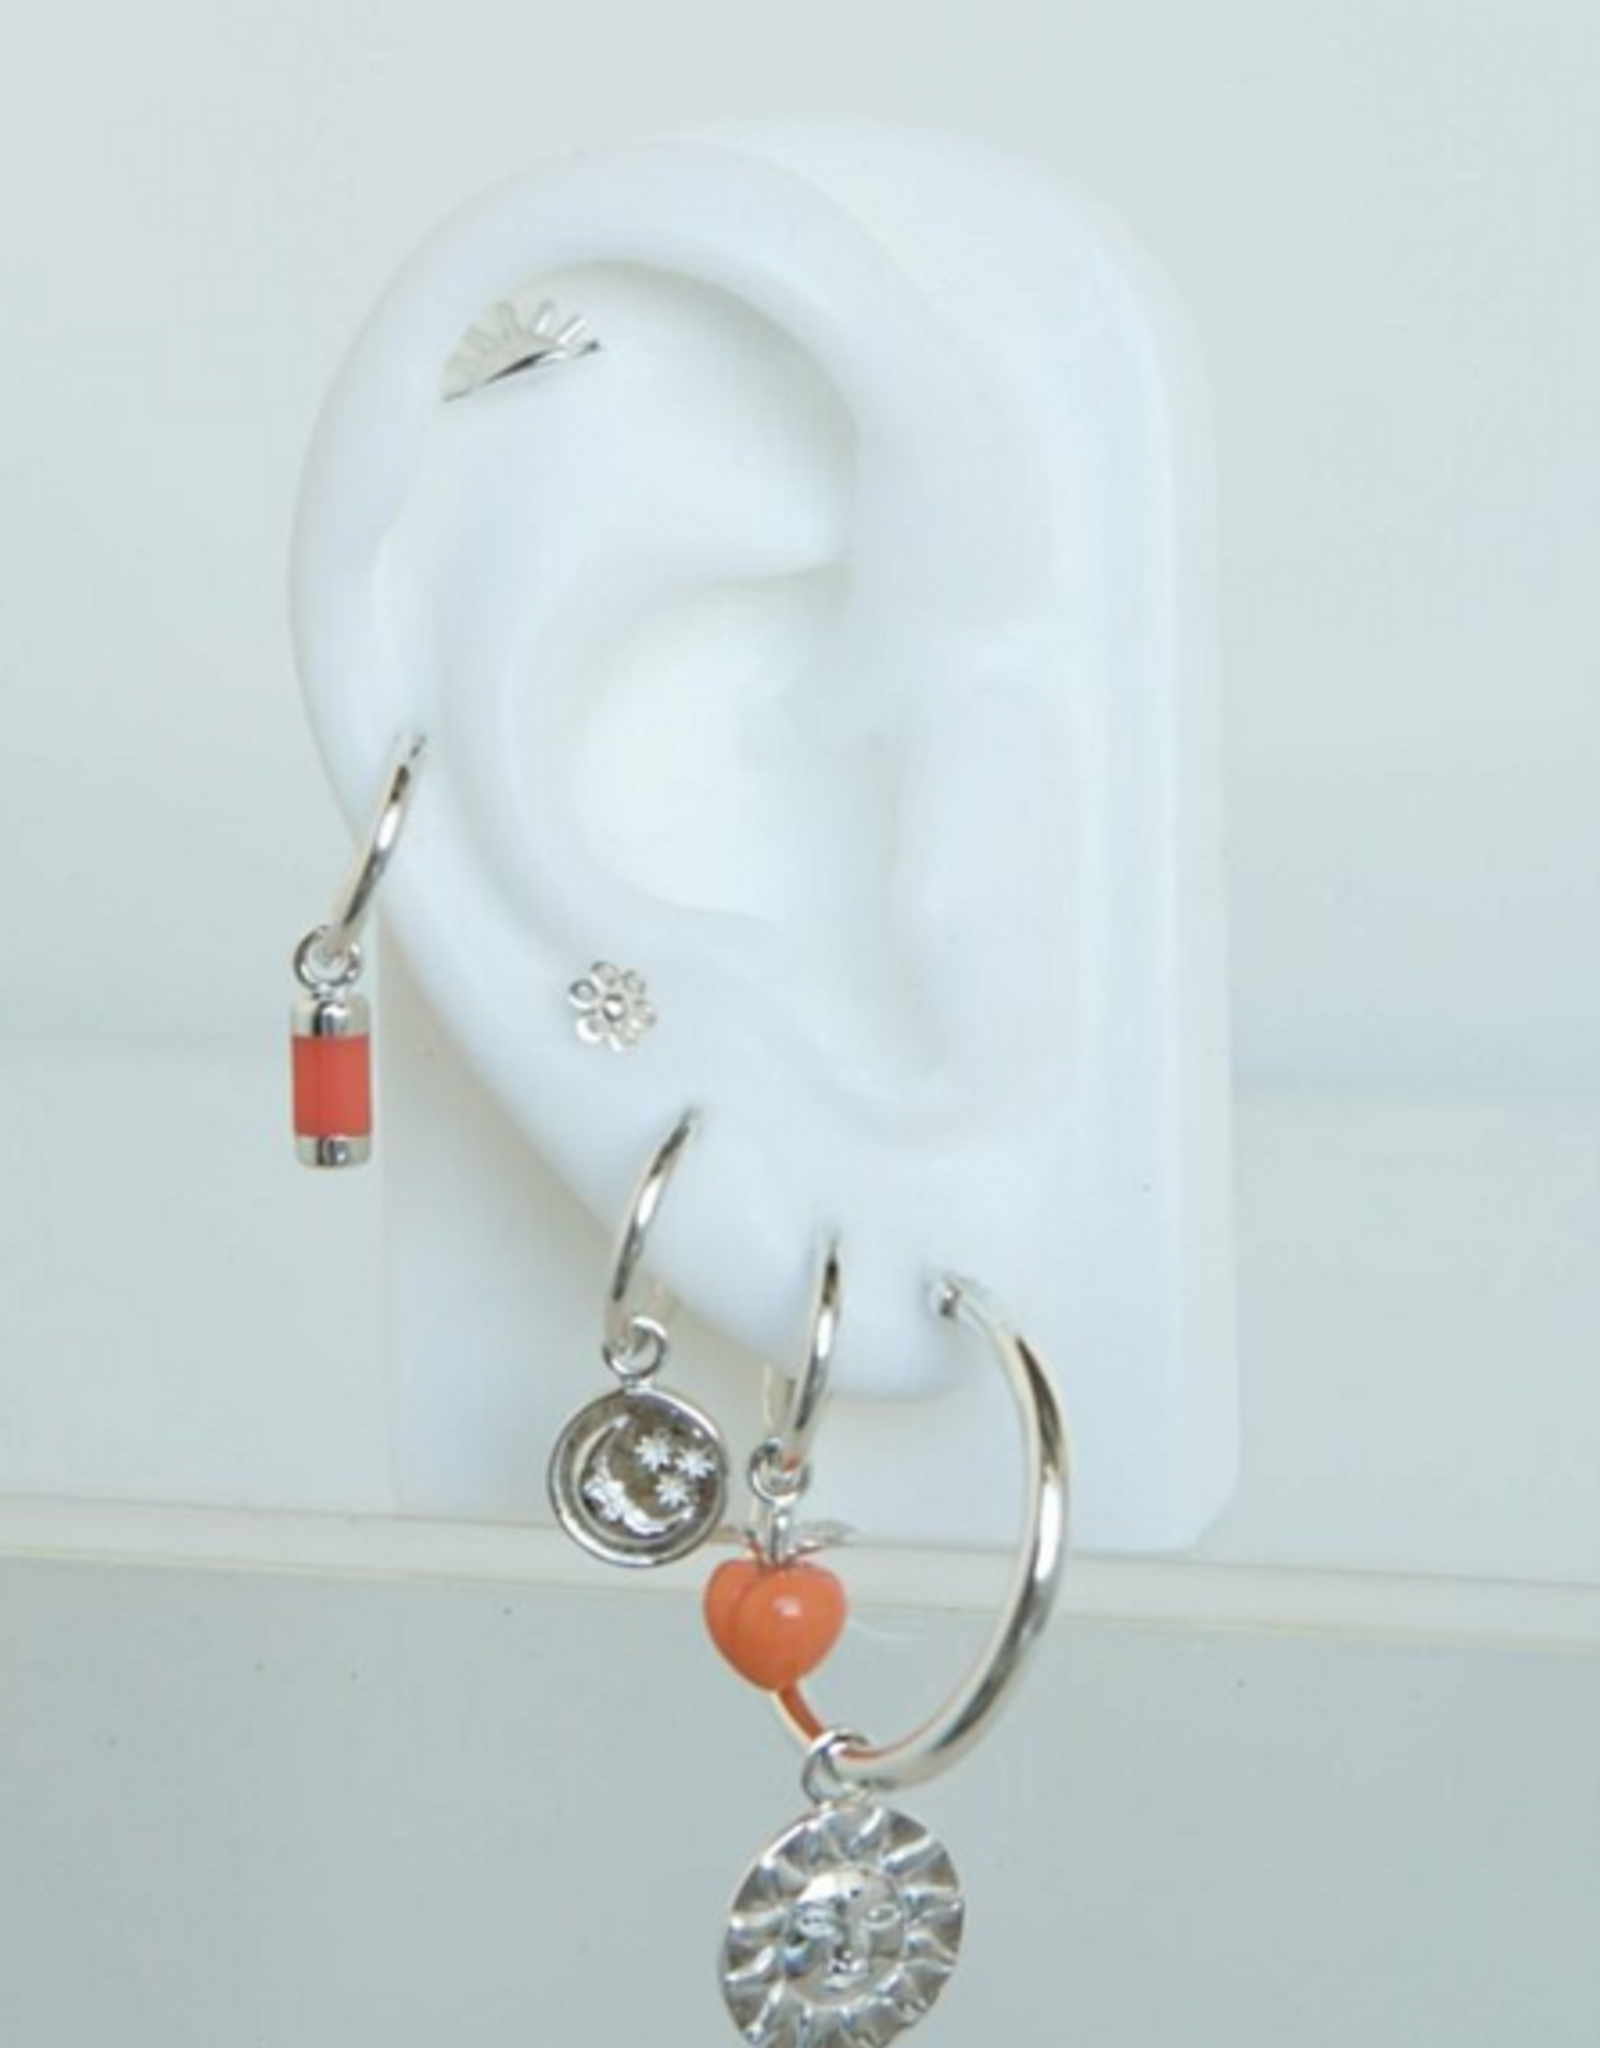 Wildthings Collectables wild feeling peachy earring silver